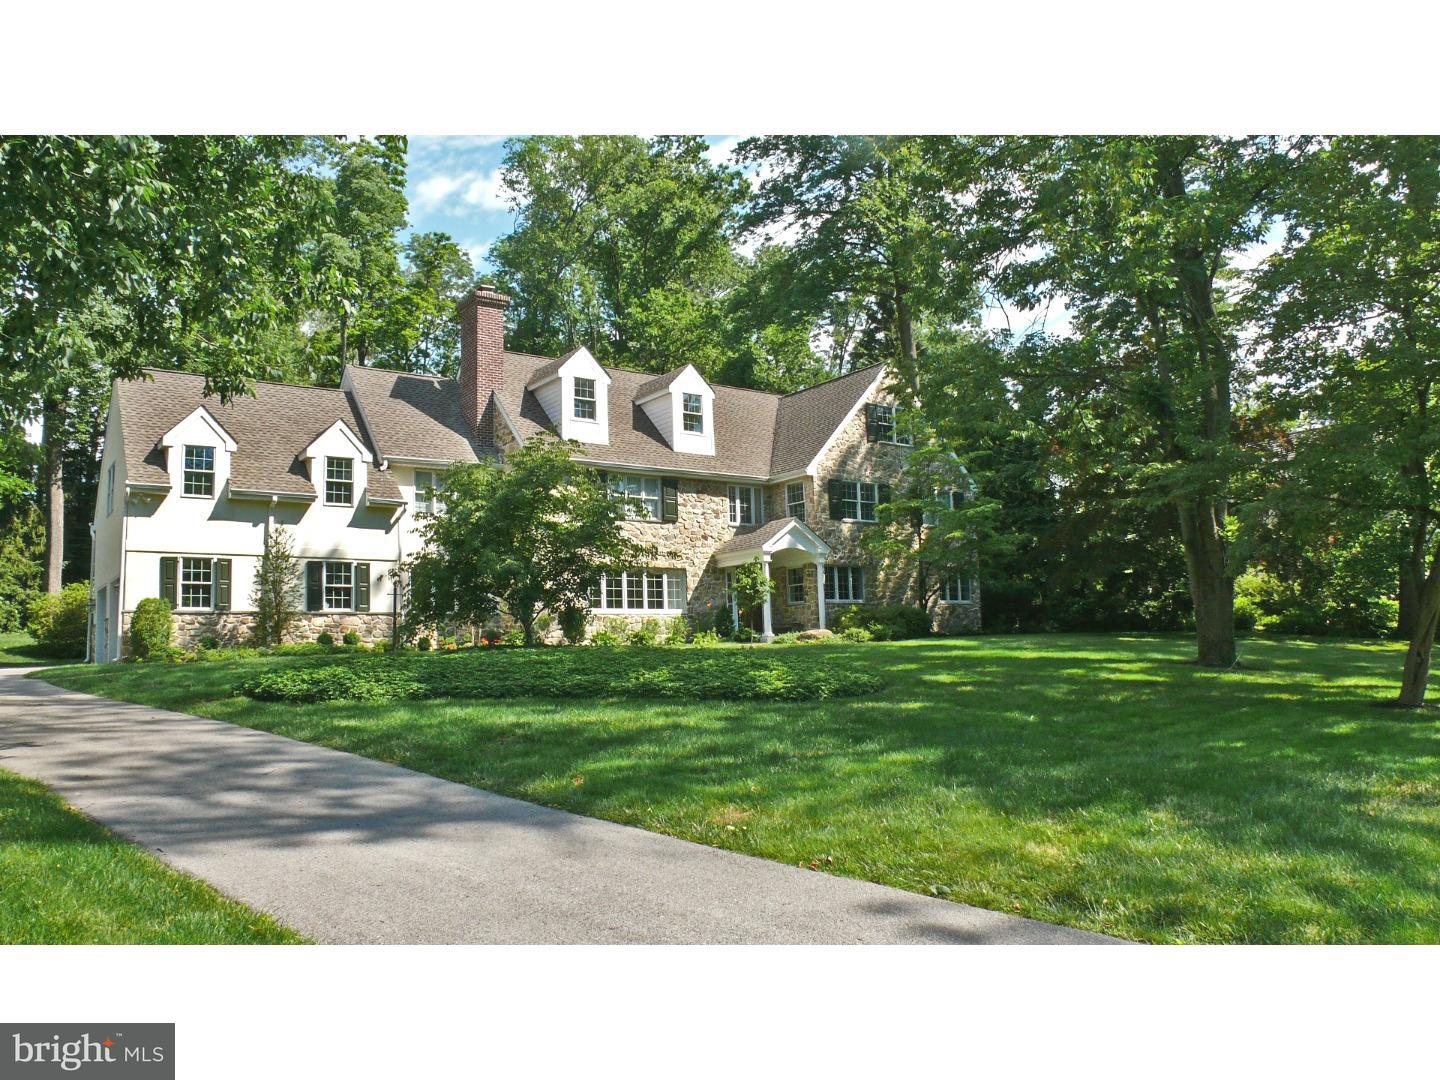 510 Great Springs Road Bryn Mawr, PA 19010